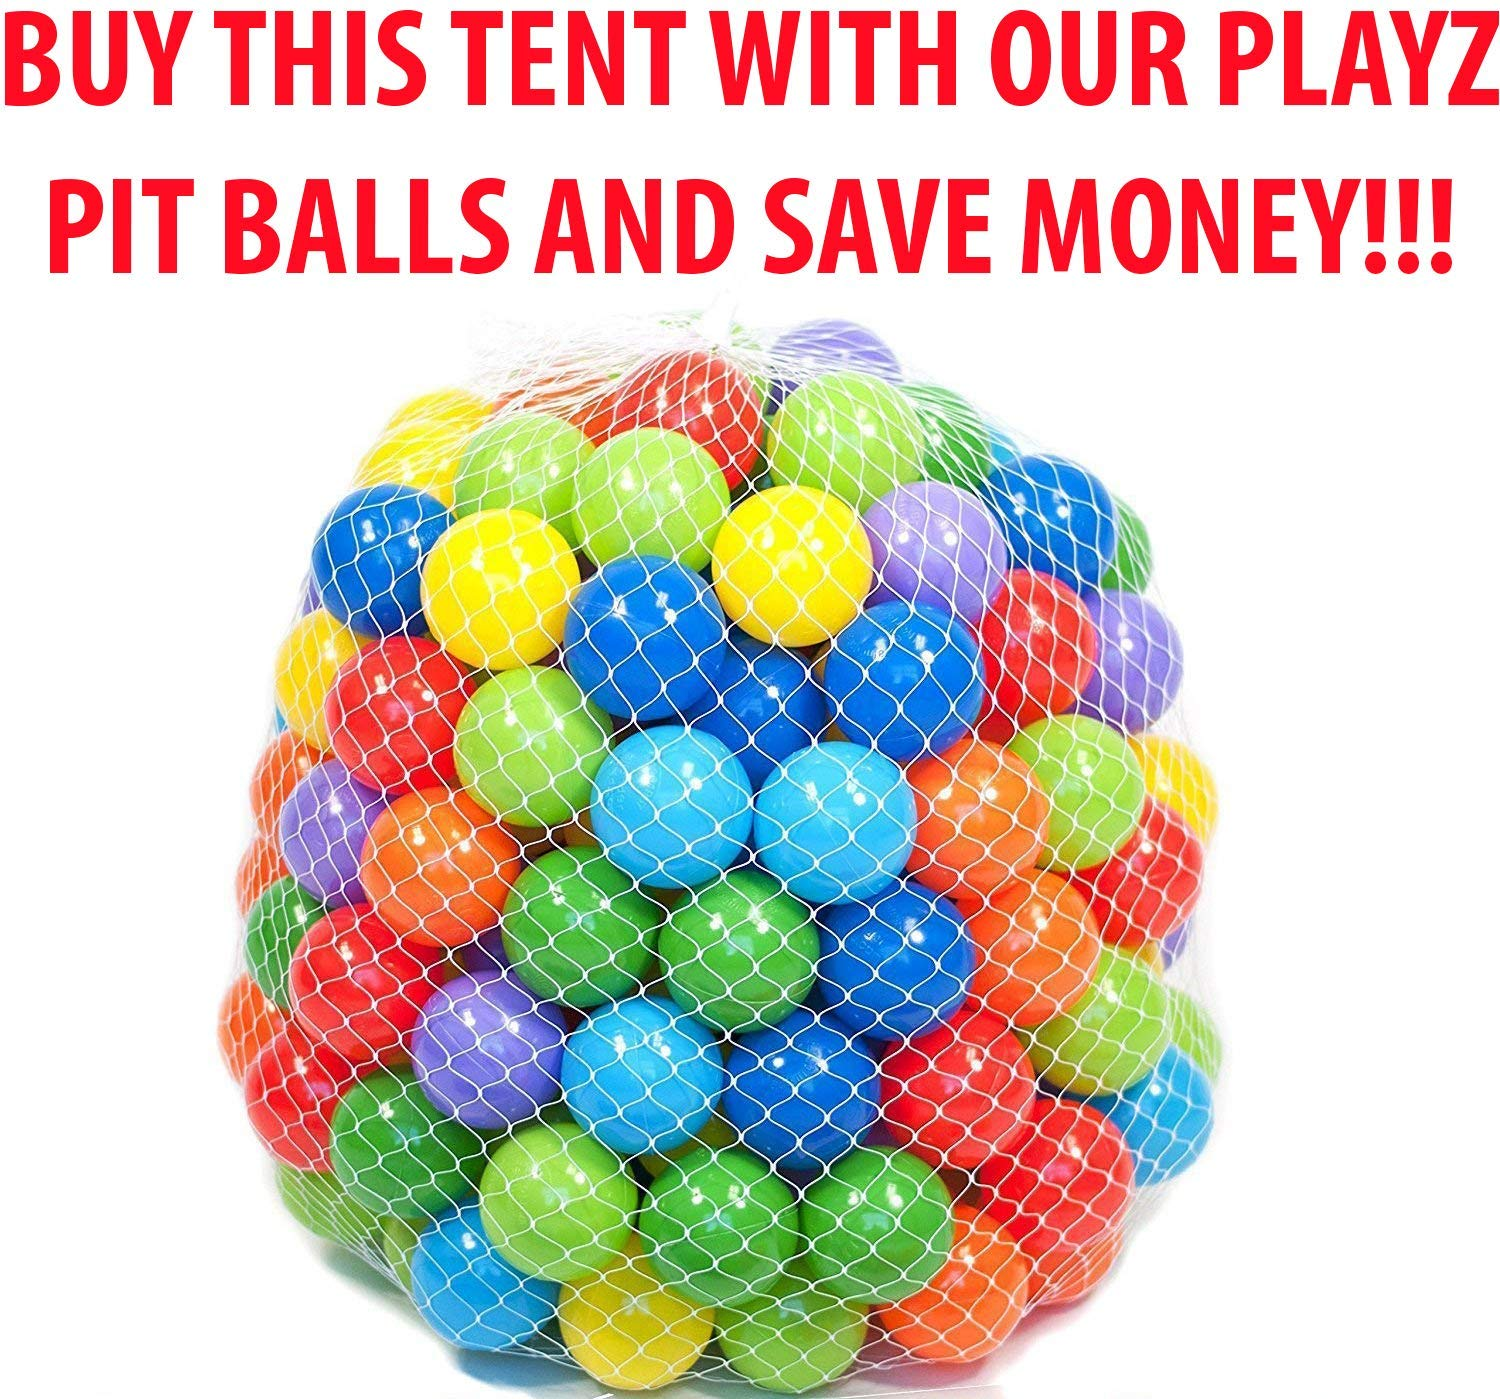 Playz Ball Pit, Play Tent and Tunnels for Kids, Gift for Toddler Boys & Girls, Best Birthday Gift for 1 2 3 4 5 Year old, Pop Up Baby Play Toy, Indoor & Outdoor Use as Portable Play Center Storage Bag by Playz